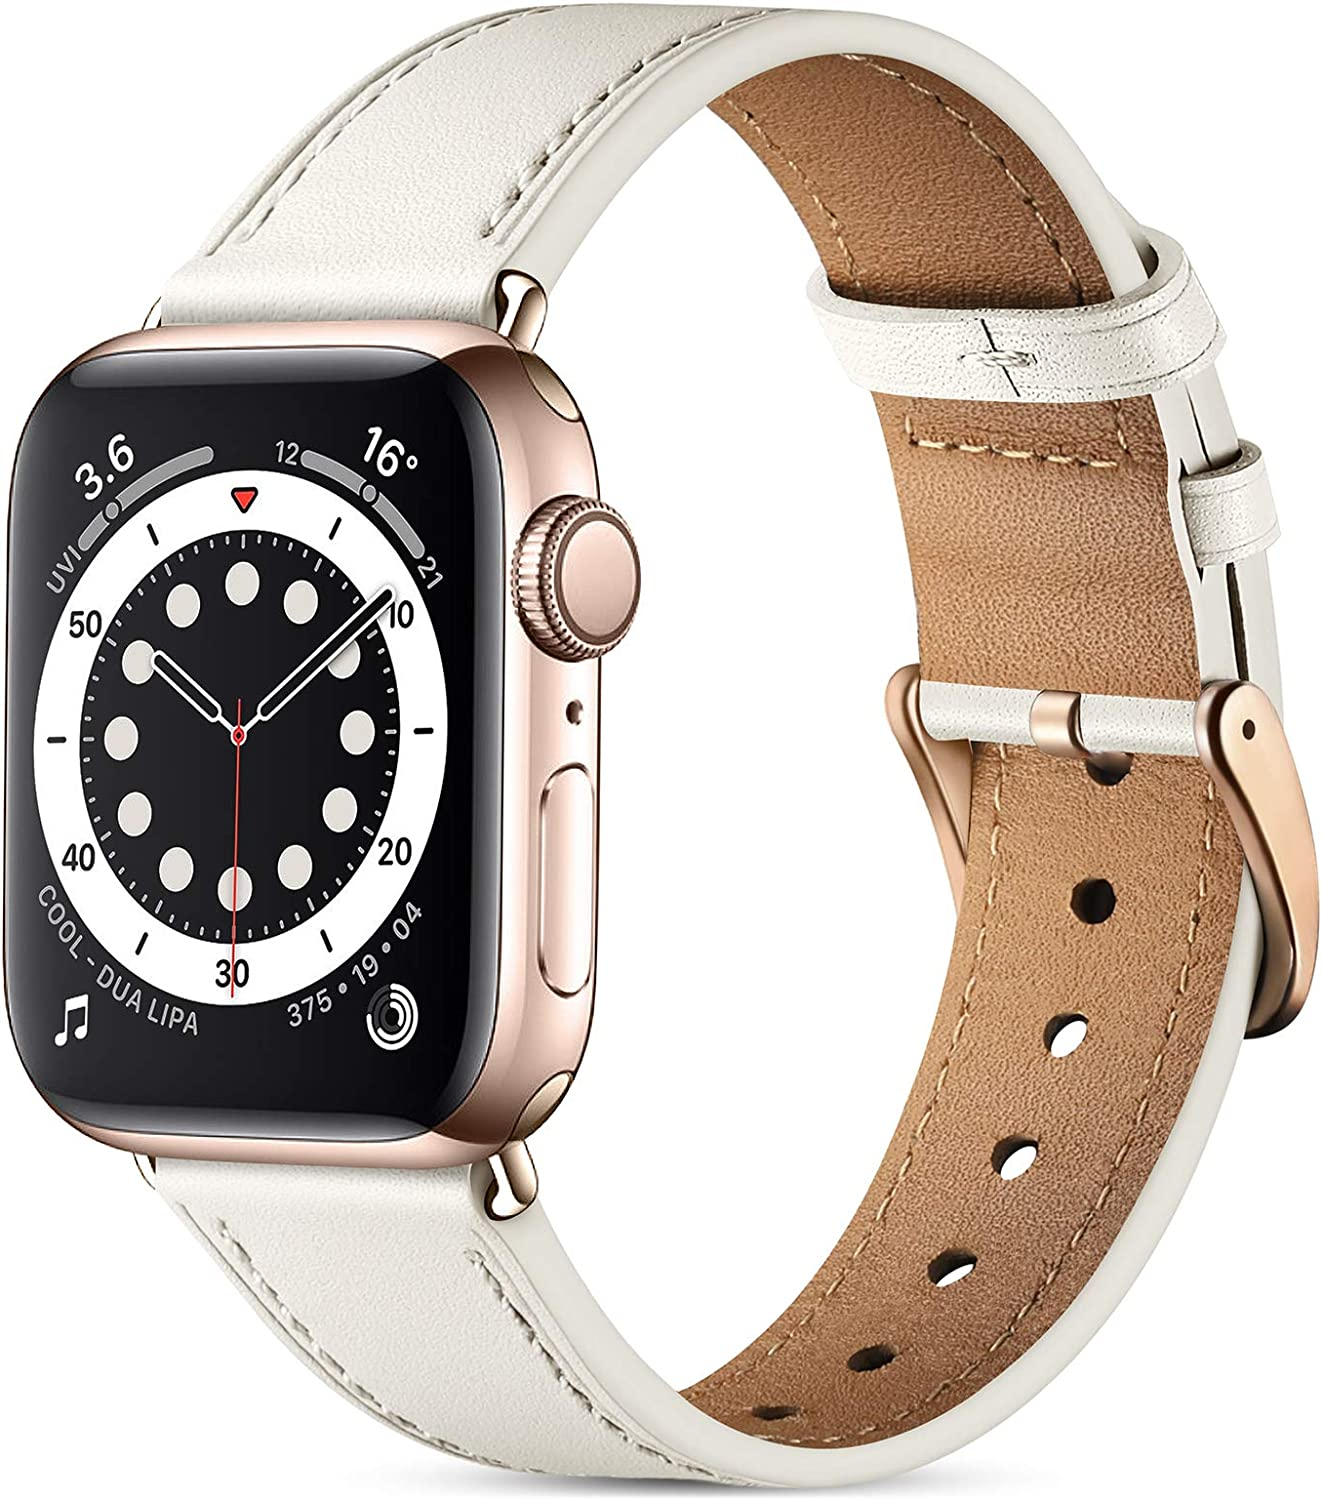 Easuny Leather Band Compatible with Apple Watch Bands SE 40mm 38mm iWatch Series 6 5 4 3 2 1, Classical Soft Genuine Leather Strap Wristband Replacement Accessories for Women Men,Ivy White